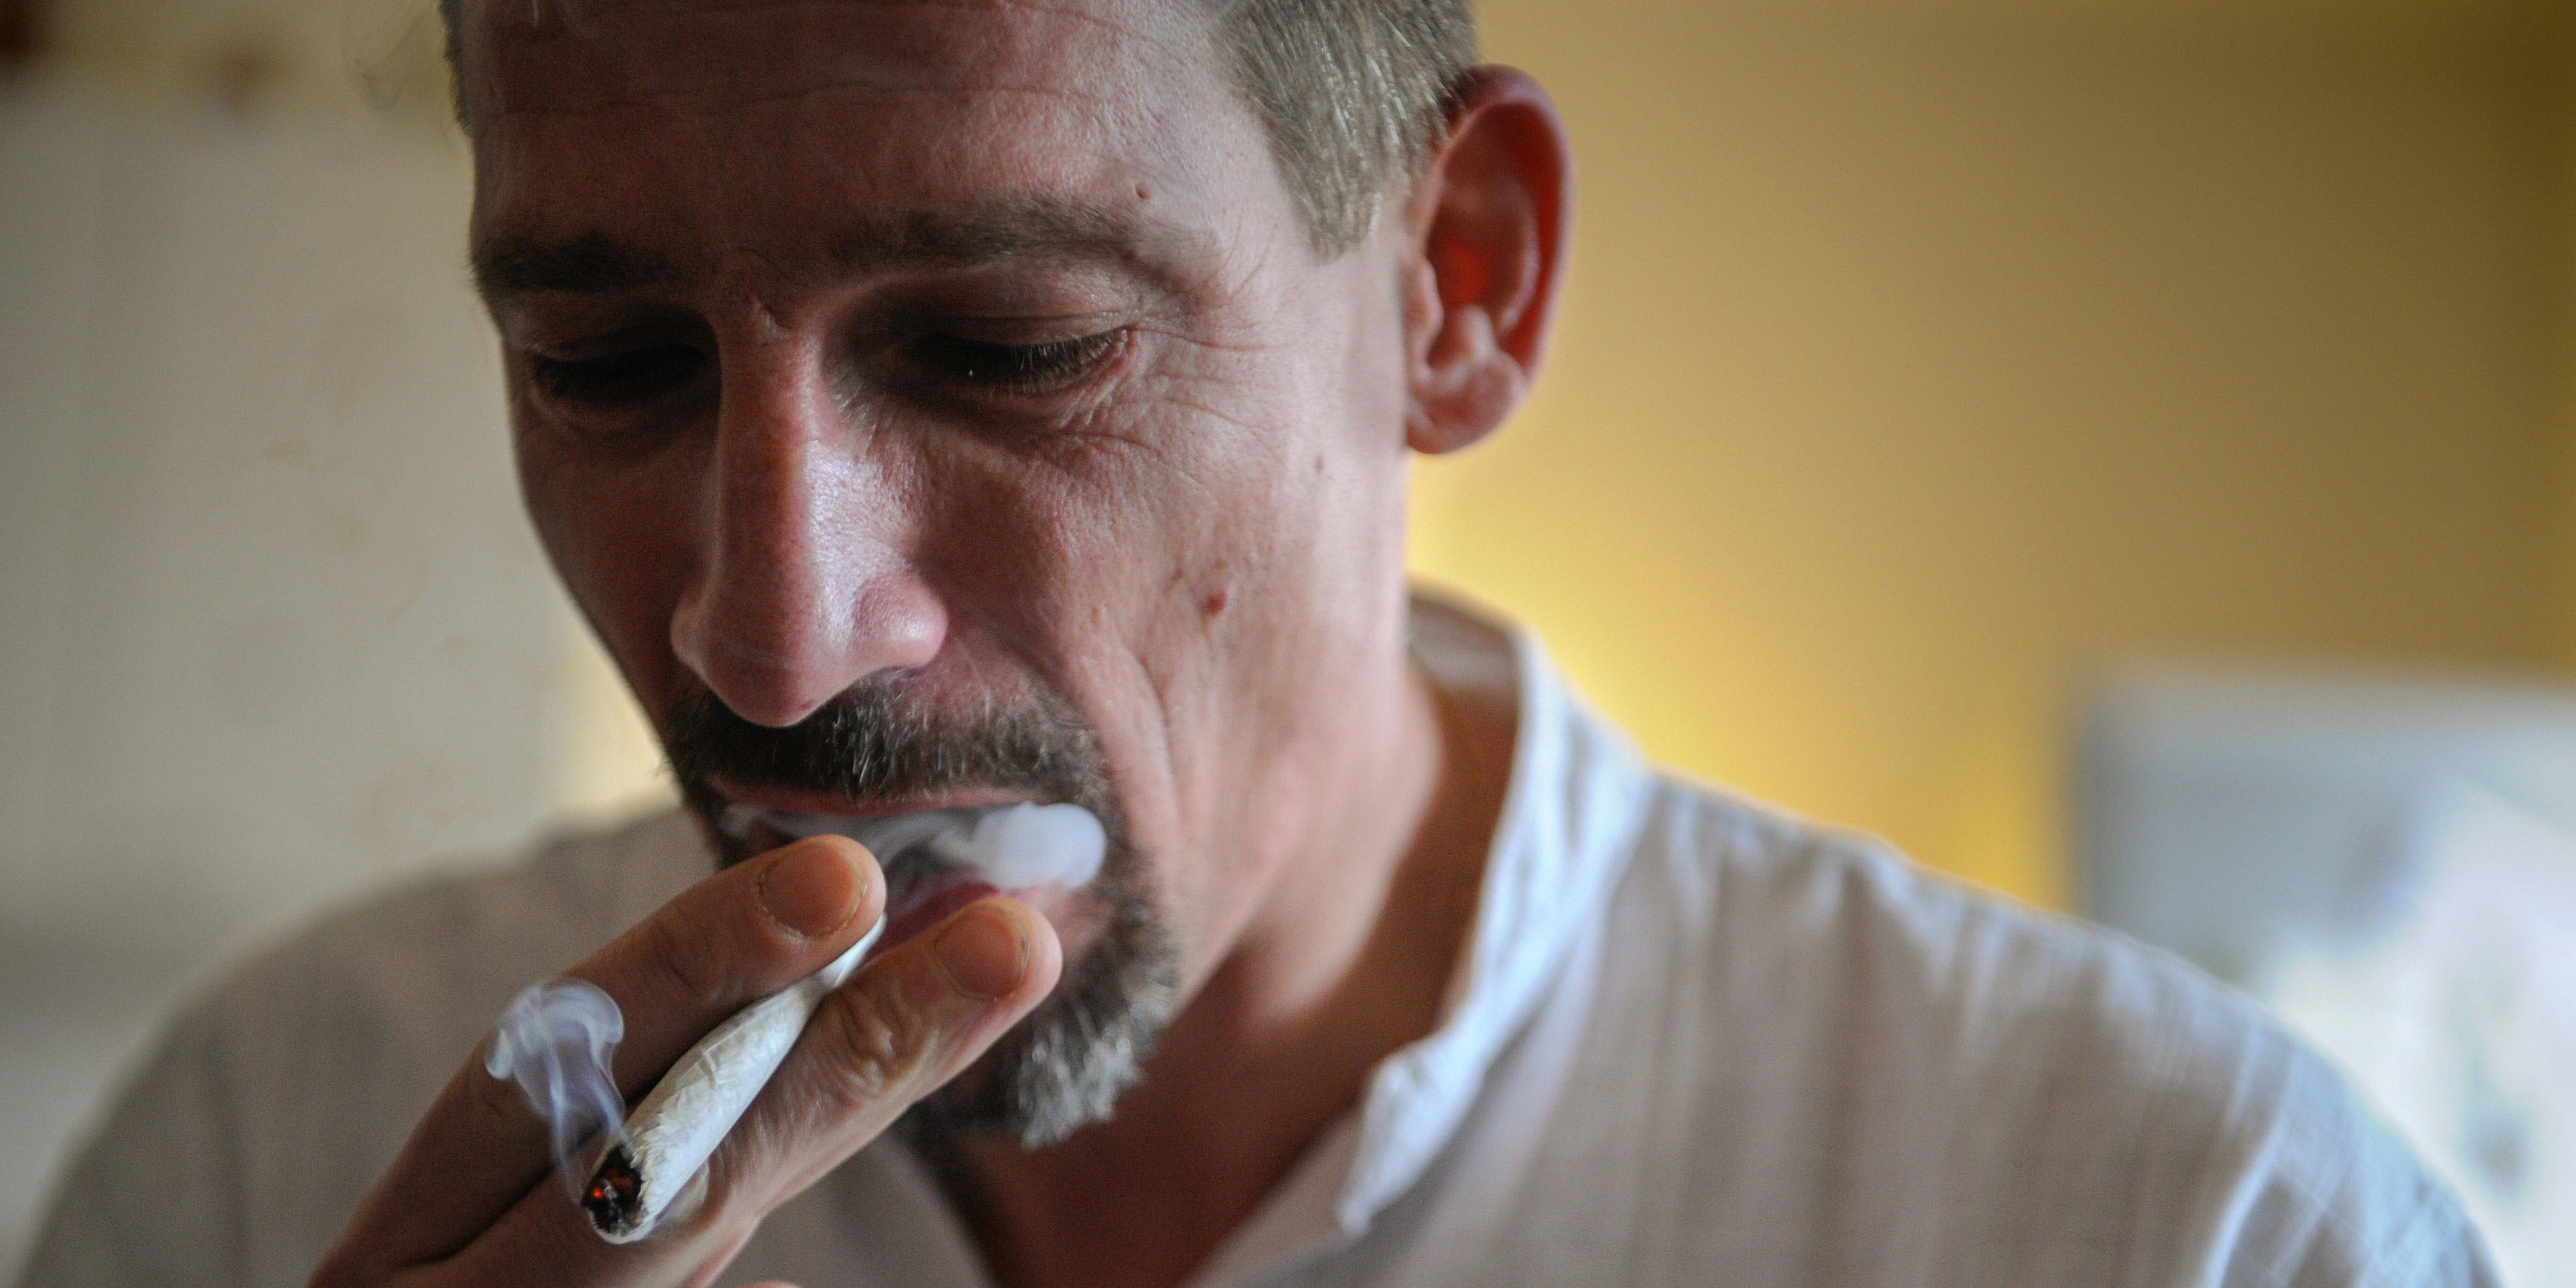 Dominique Loumachi, suffering from Dermatomyositis (Myopathy), smokes a cigarette that looks like a cannabis cigarette in order not to be charged for promoting consumption of narcotic substances while posing on February 28, 2013 in Belfort, Eastern France. Rhode Island dispensaries recently announced that they would recognize out-of-state medical marijuana licenses.